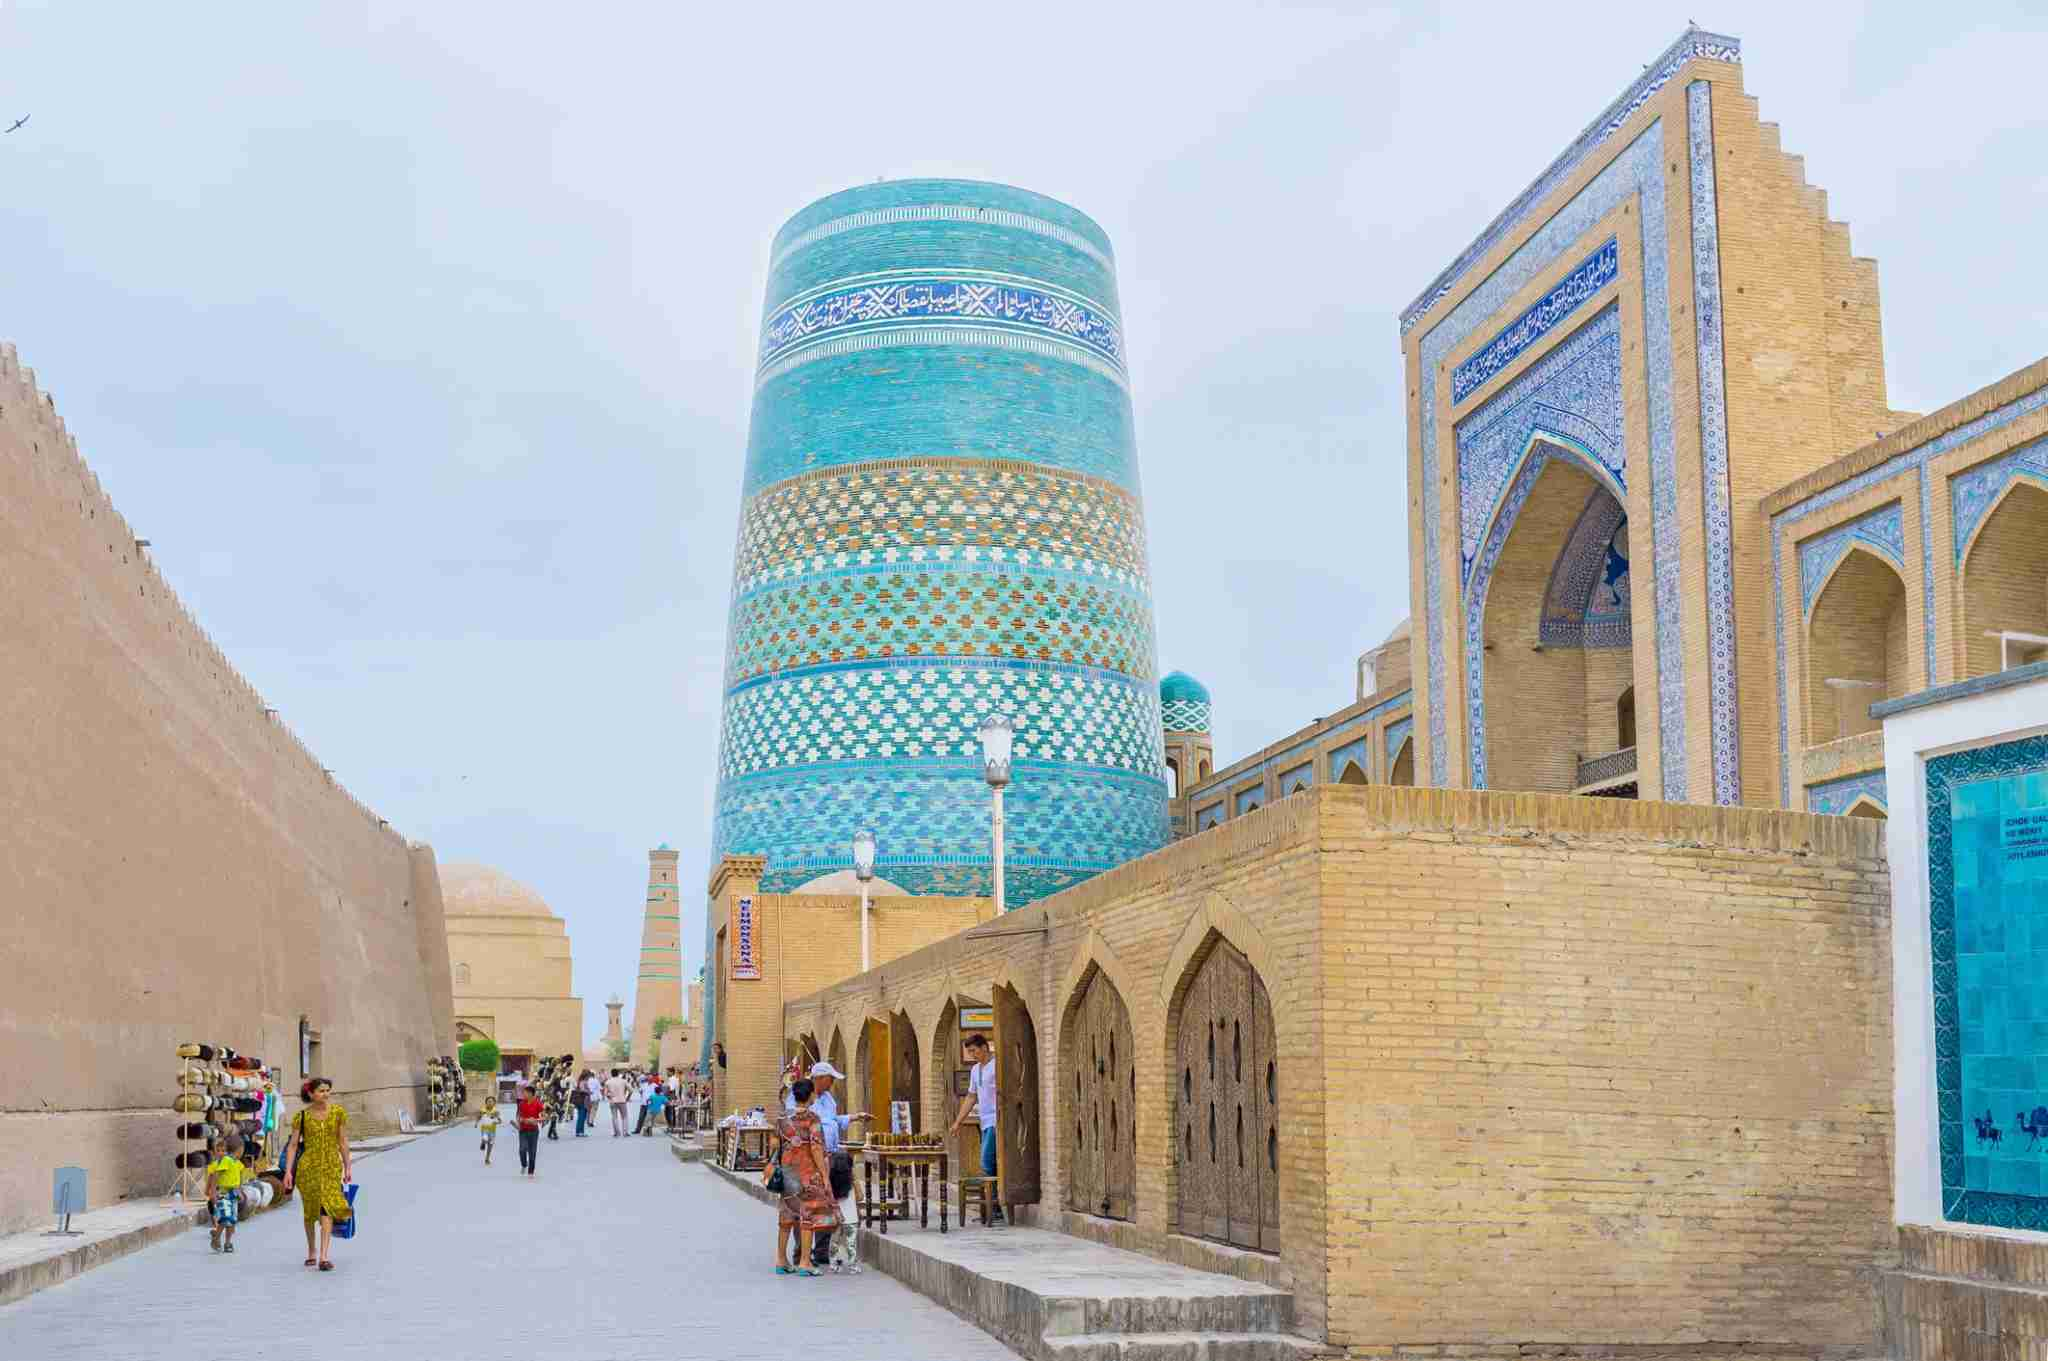 Khiva, Uzbekistan - May 3, 2015: The central street with the Kalta Minor Minaret, Muhammad Amin-Khan Madrasah and the tiled map of the town-fortress.